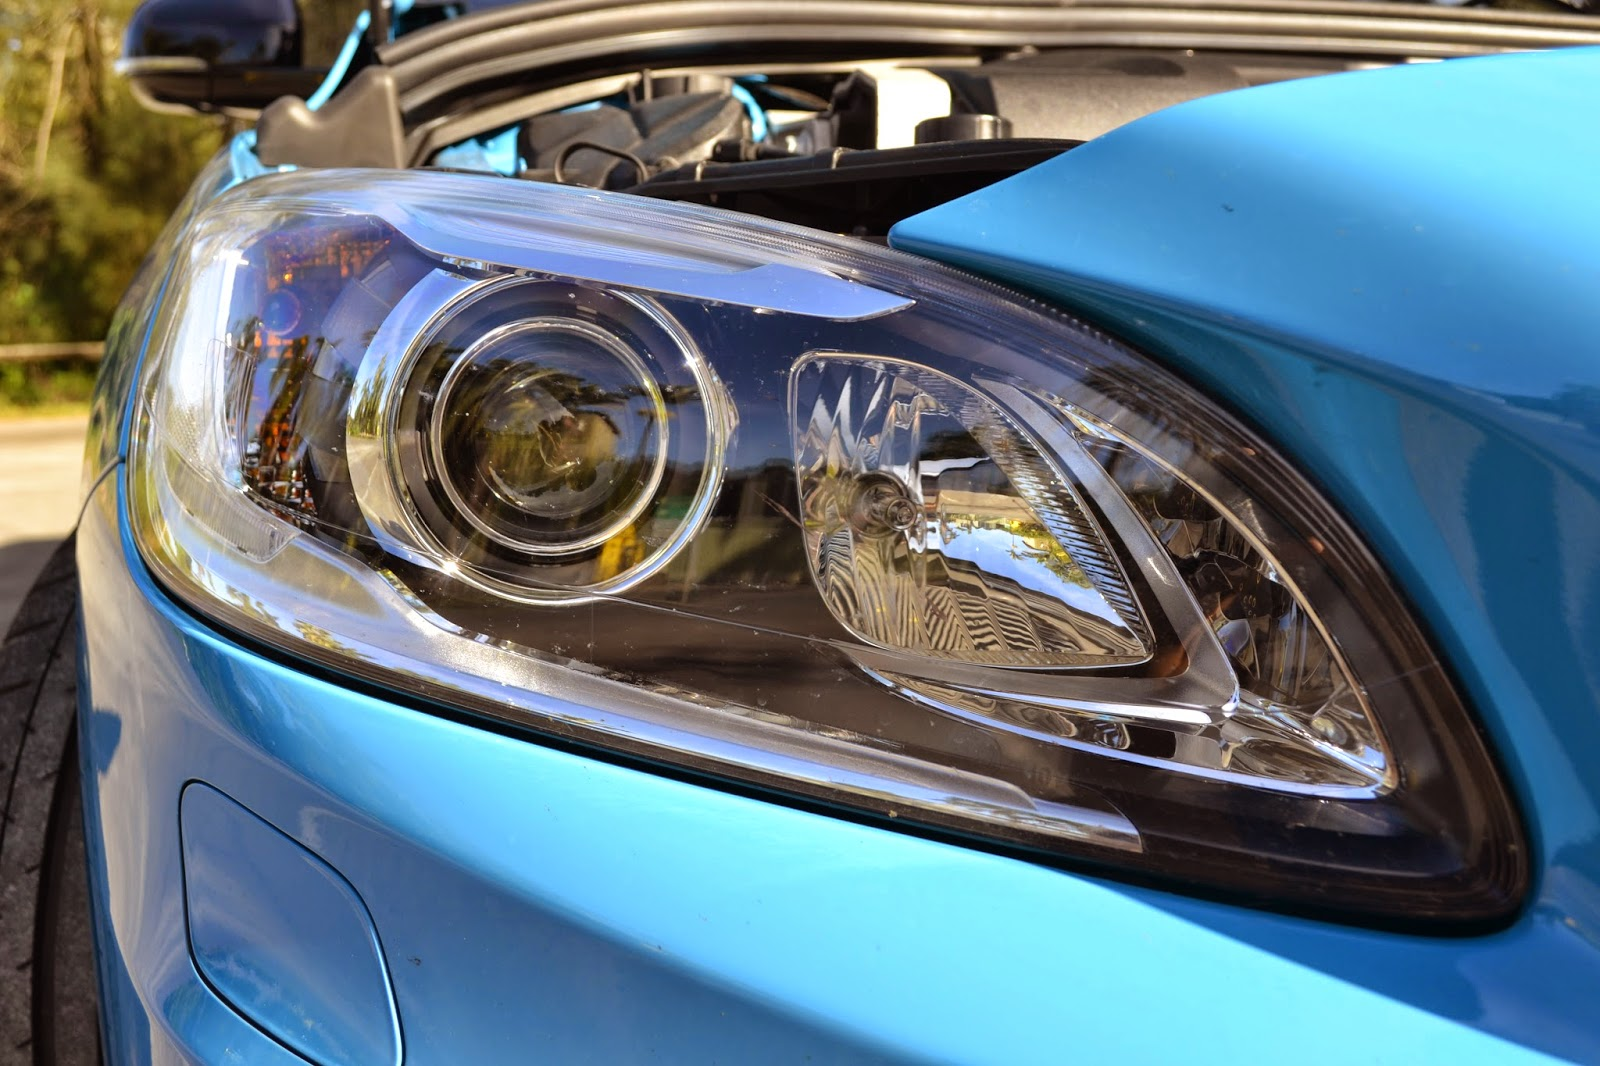 A close up of the V60's active xenon headlights